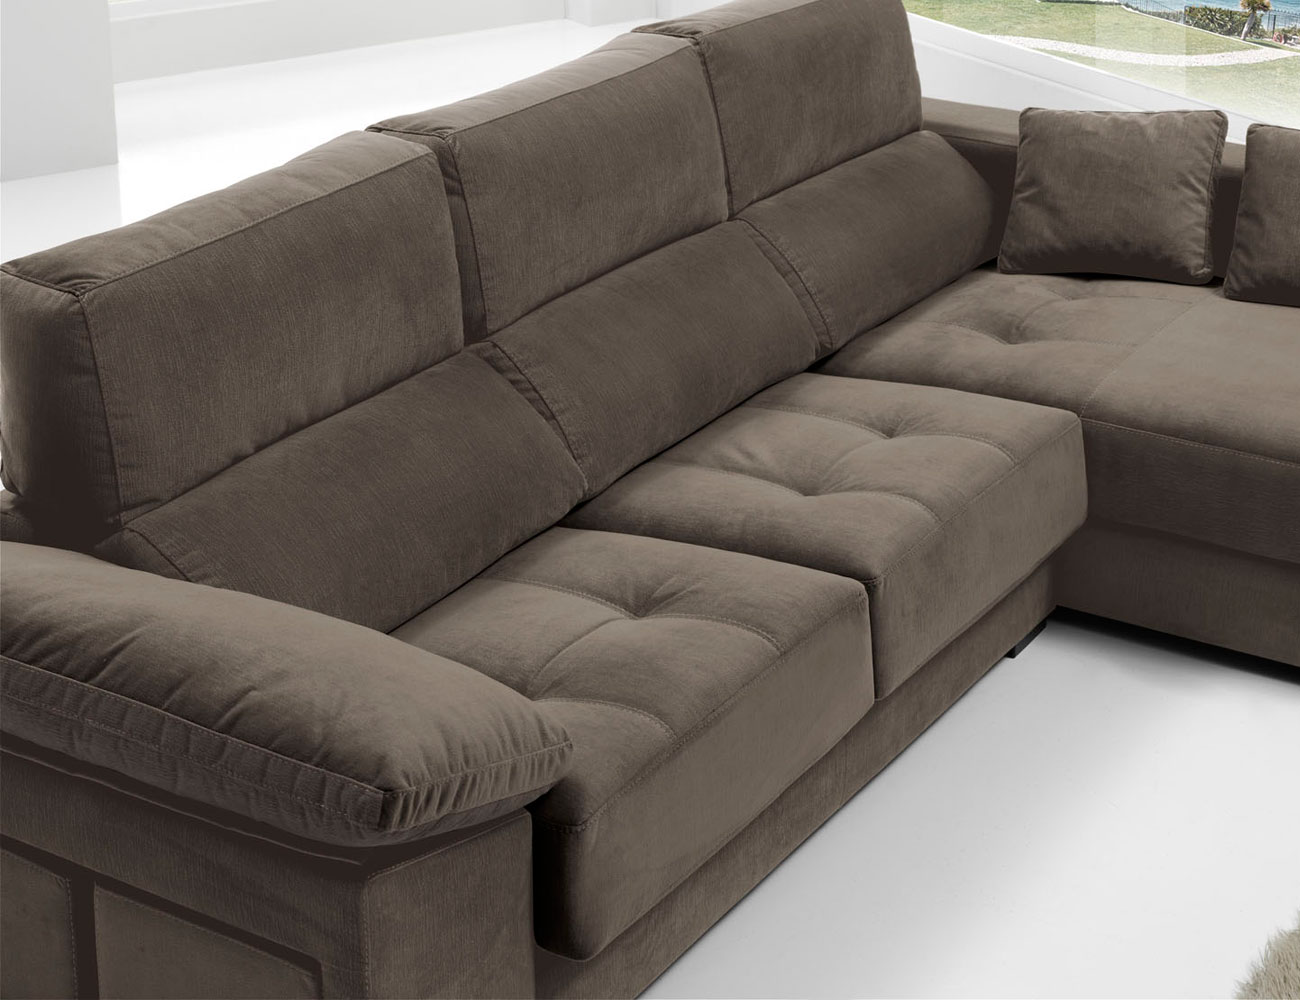 Sofa chaiselongue anti manchas bering pouf 25